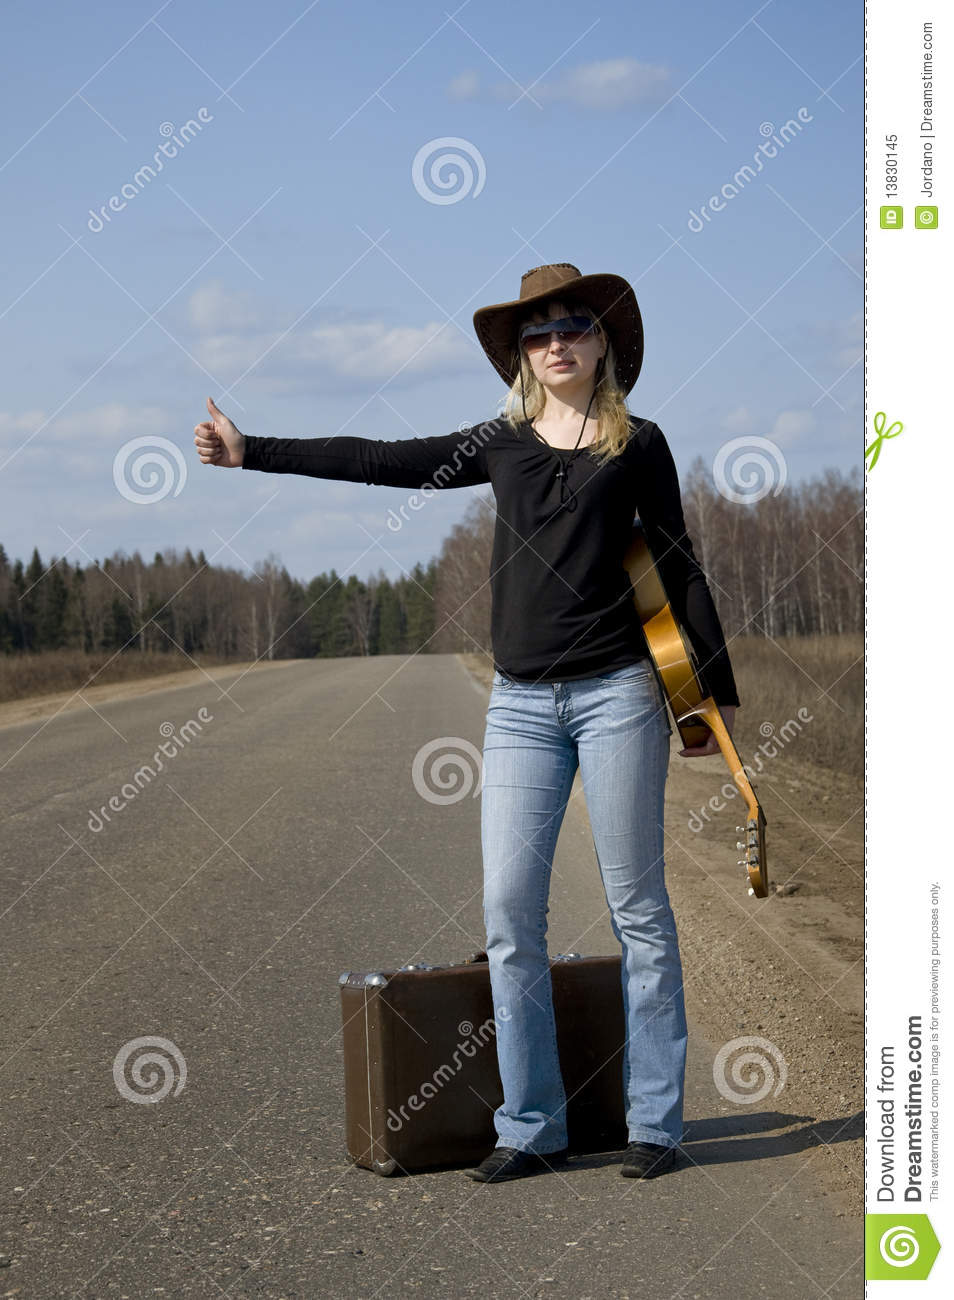 Woman on the road in auto-stop